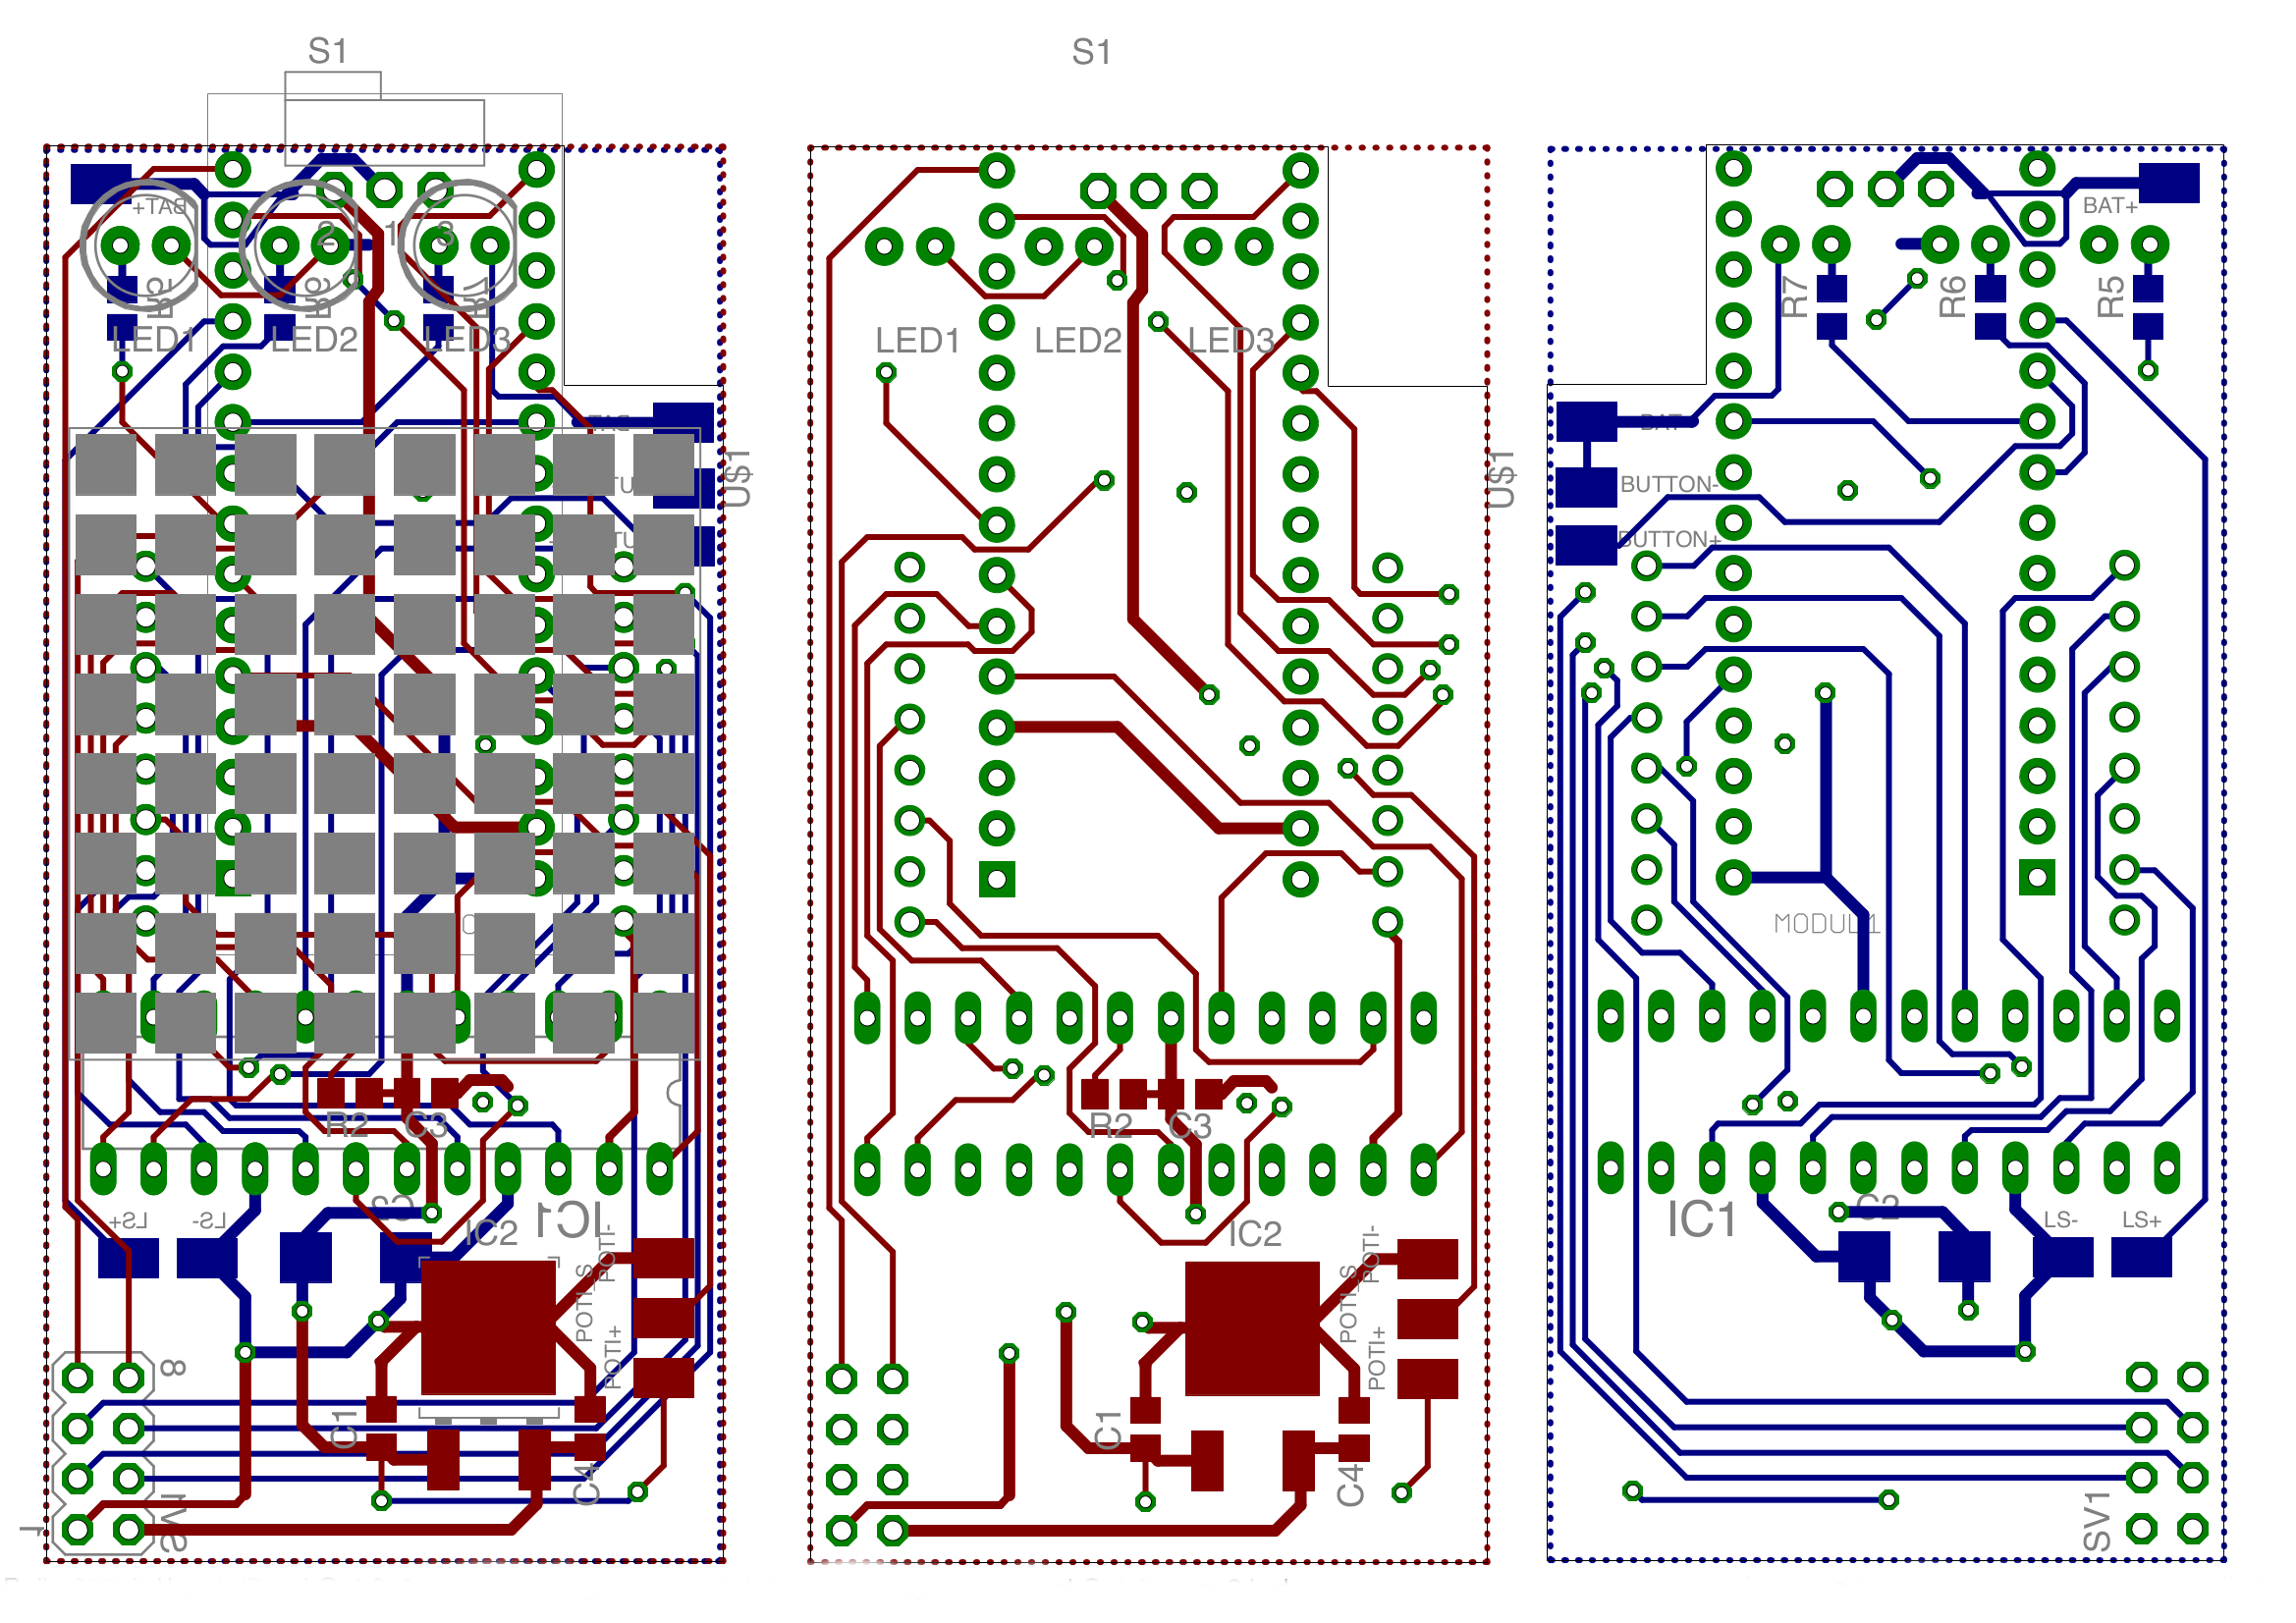 Printed Circuit Board Schematics Wiring Diagram Will Be A Thing Pcb Teleball Electronics Rh Org Schematic For Repair